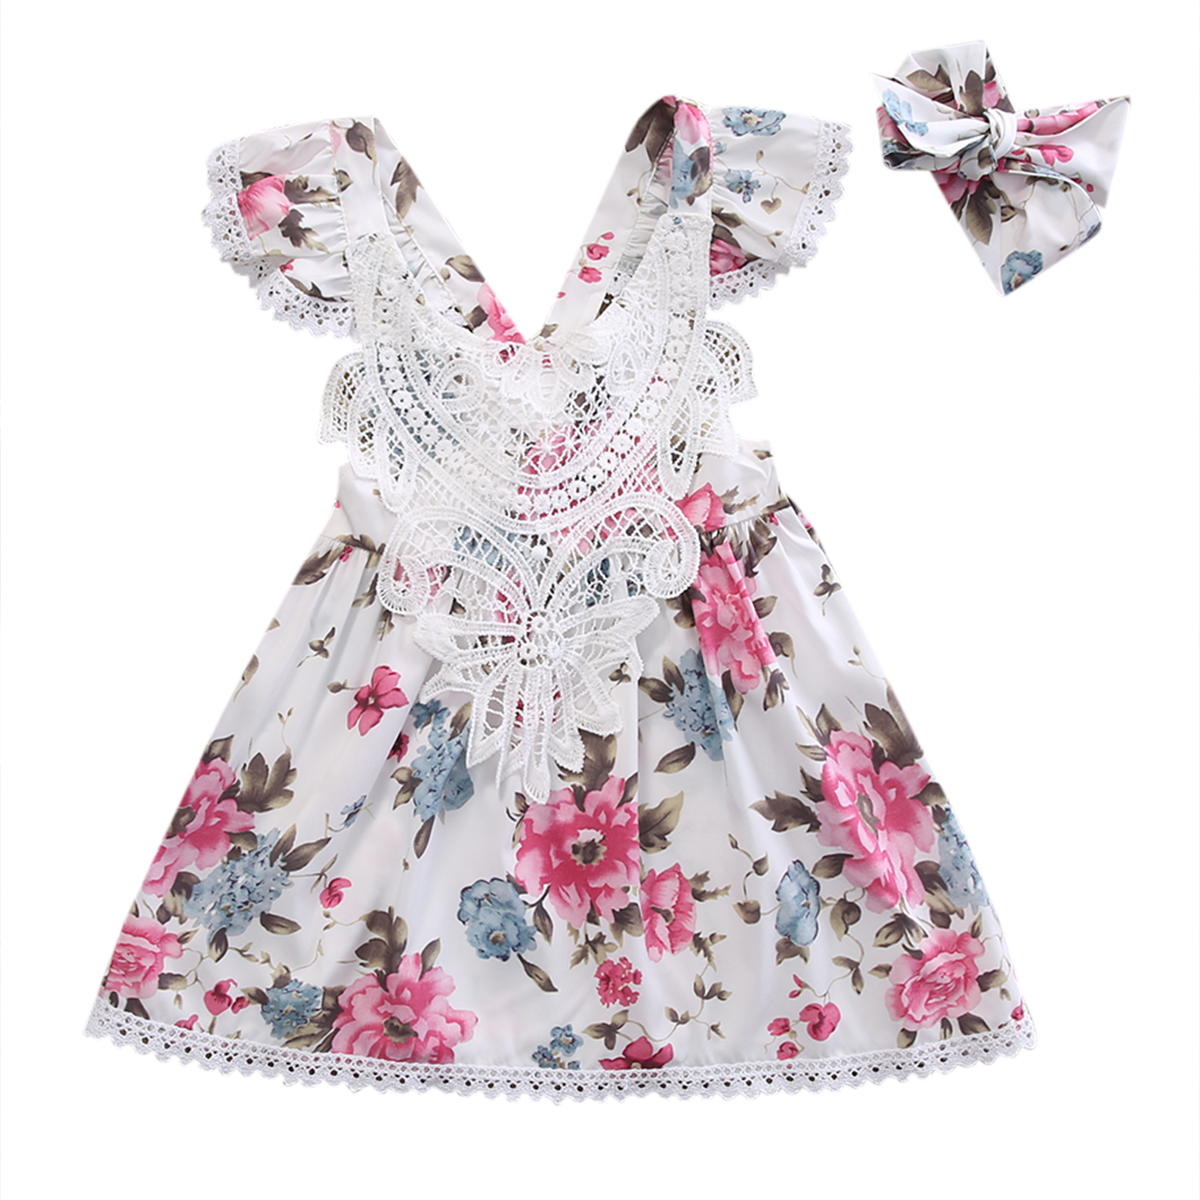 Girls Flower Floral Sleeveless Mini Princess Lace Dresses Clothes Summer Toddler Kids Baby Girl Clothing Dress liebherr cnbe 4015